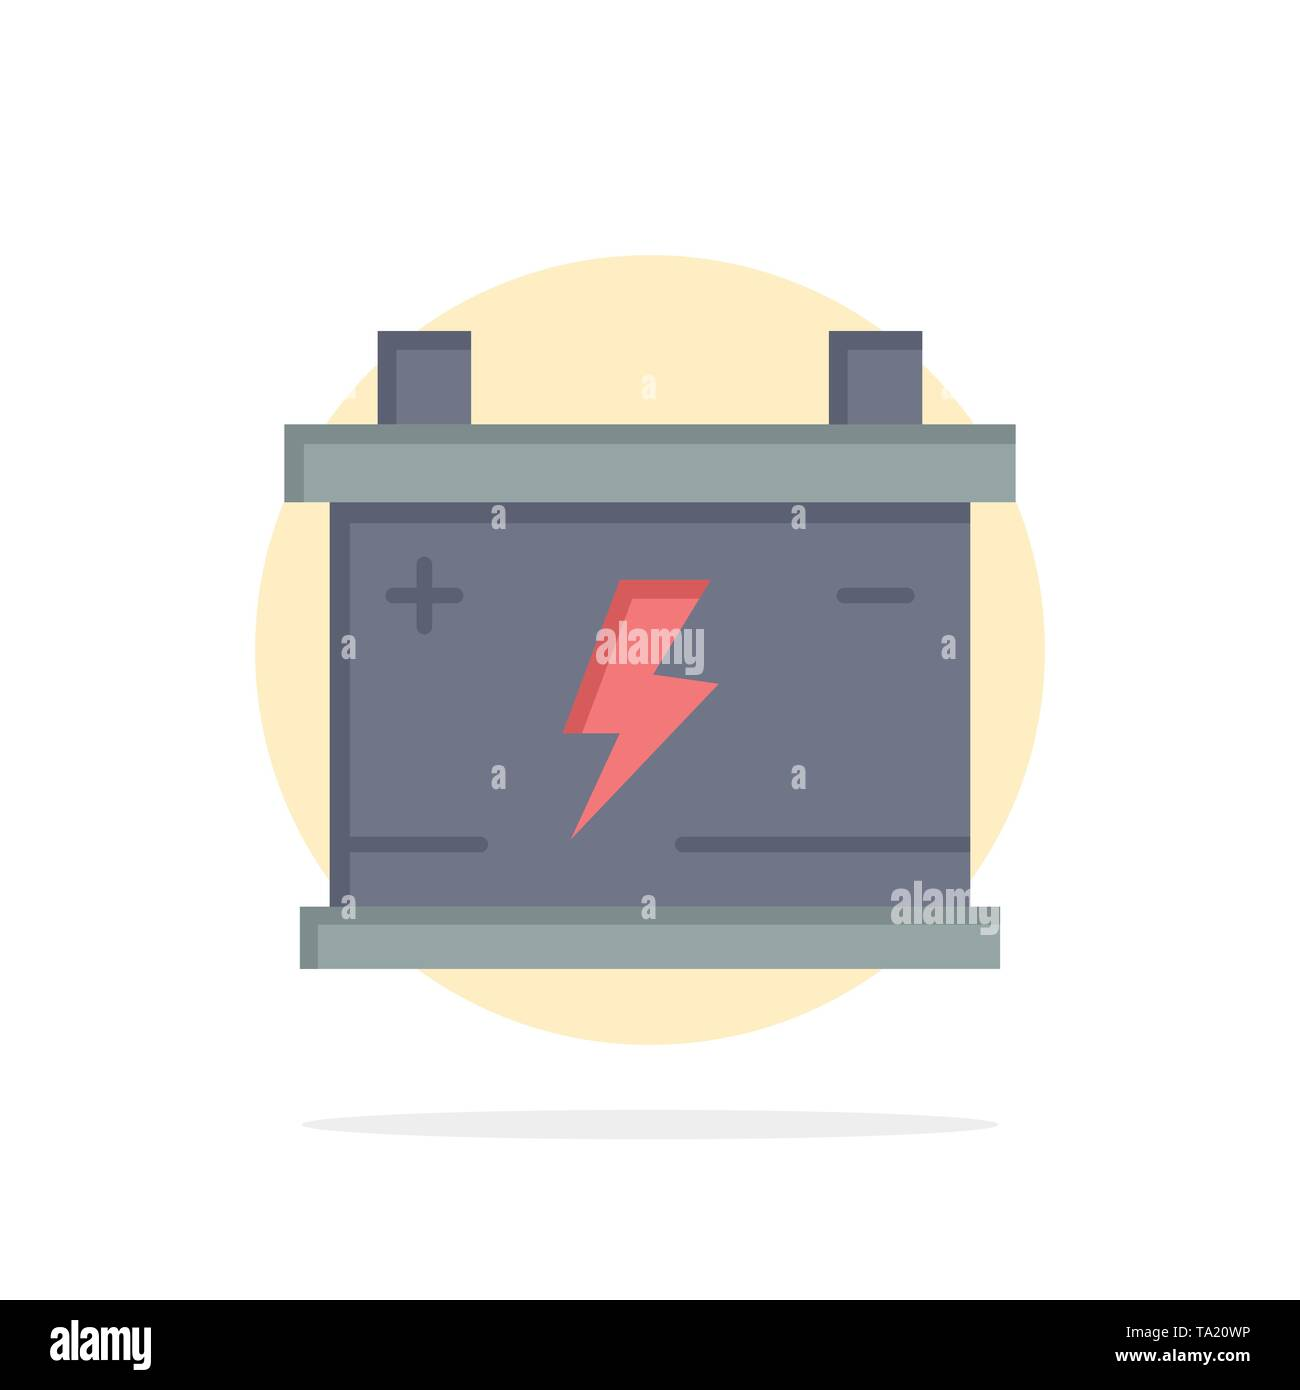 Accumulator, Battery, Power, Car Abstract Circle Background Flat color Icon - Stock Image